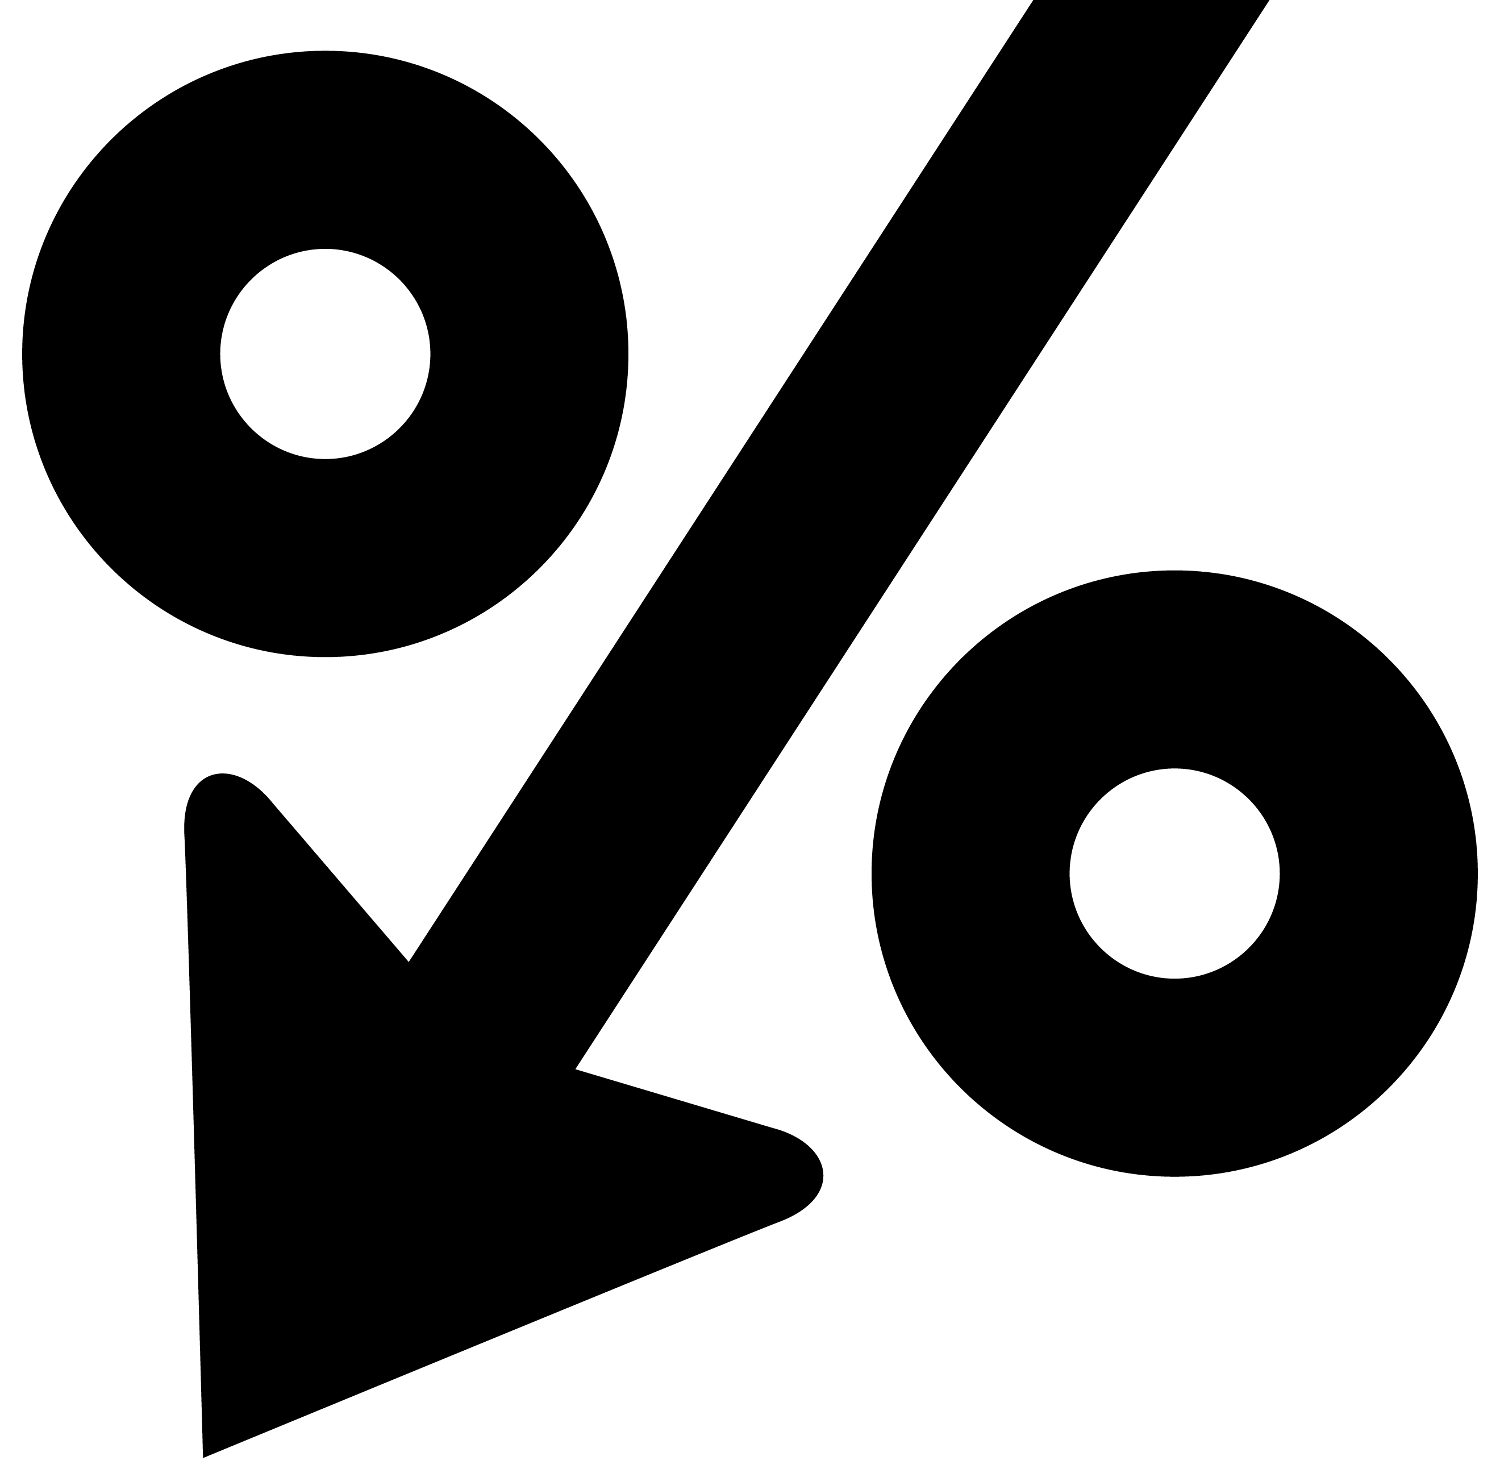 icon with percent symbol and down arrow to symbolize percent decrease